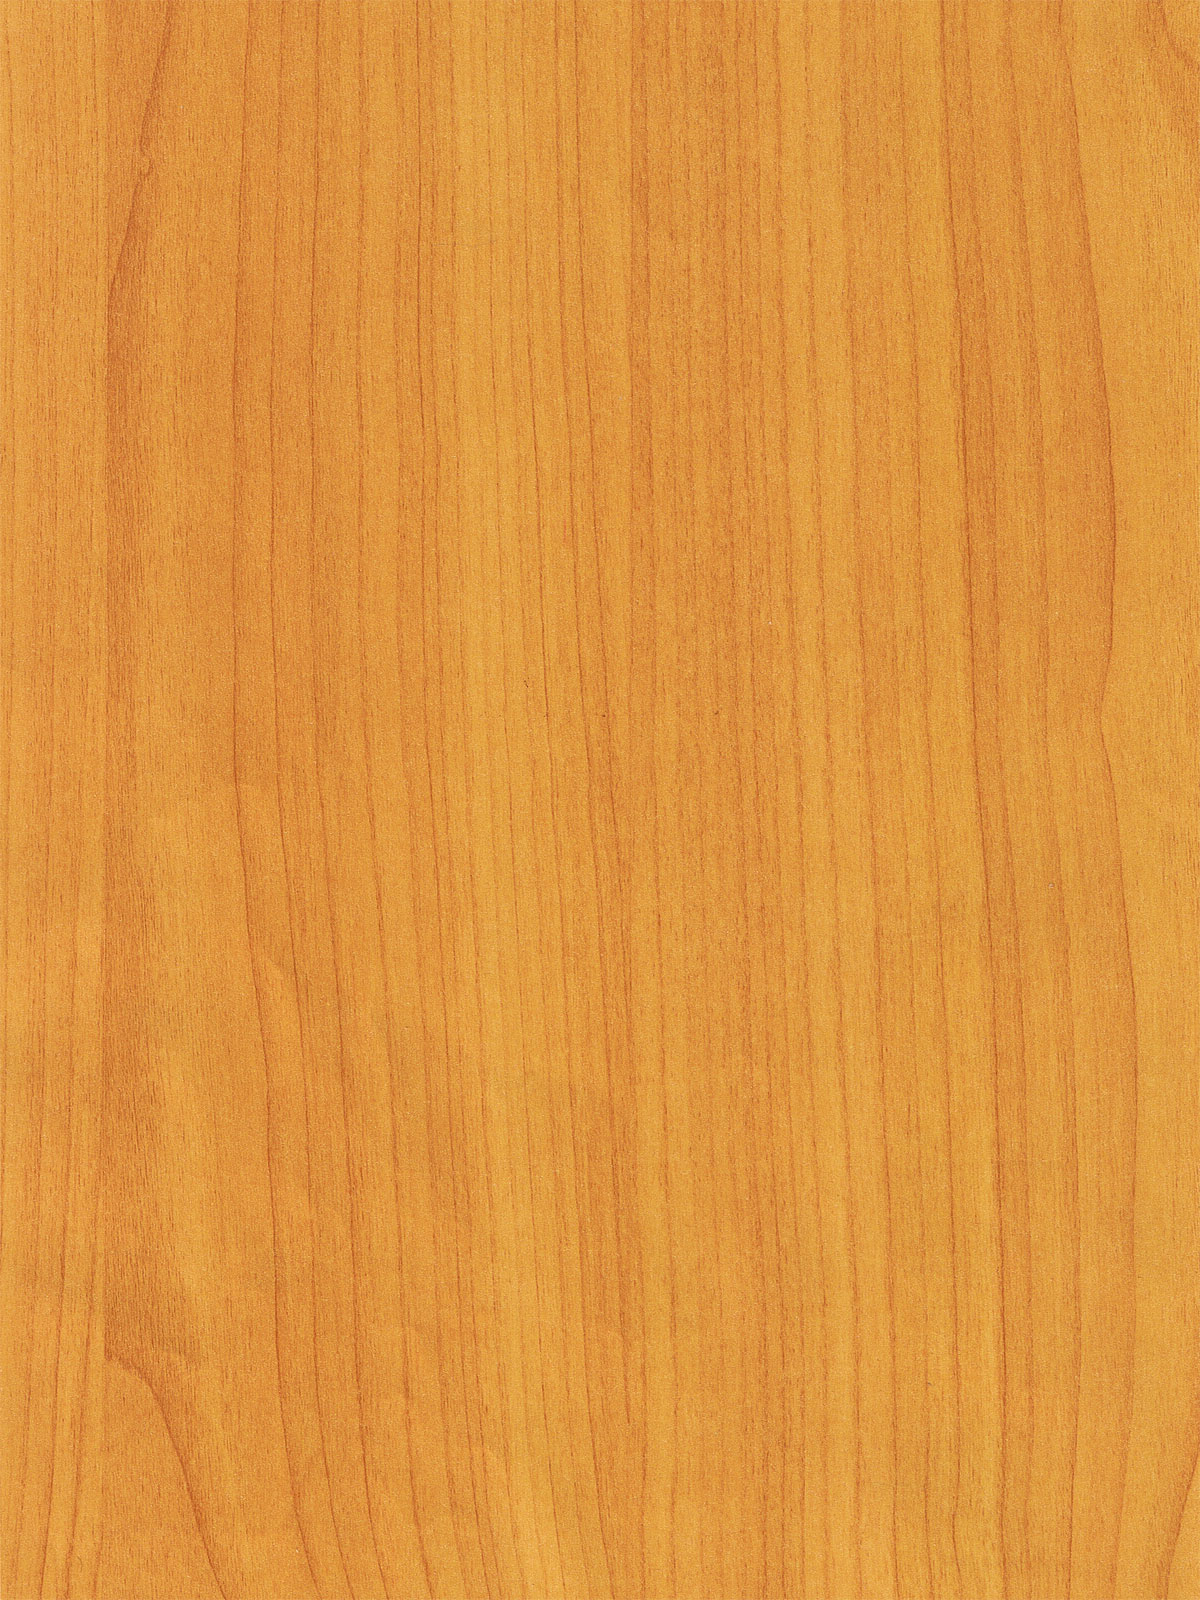 Colors of laminate flooring mixing laminate floor colors for Shades of laminate flooring